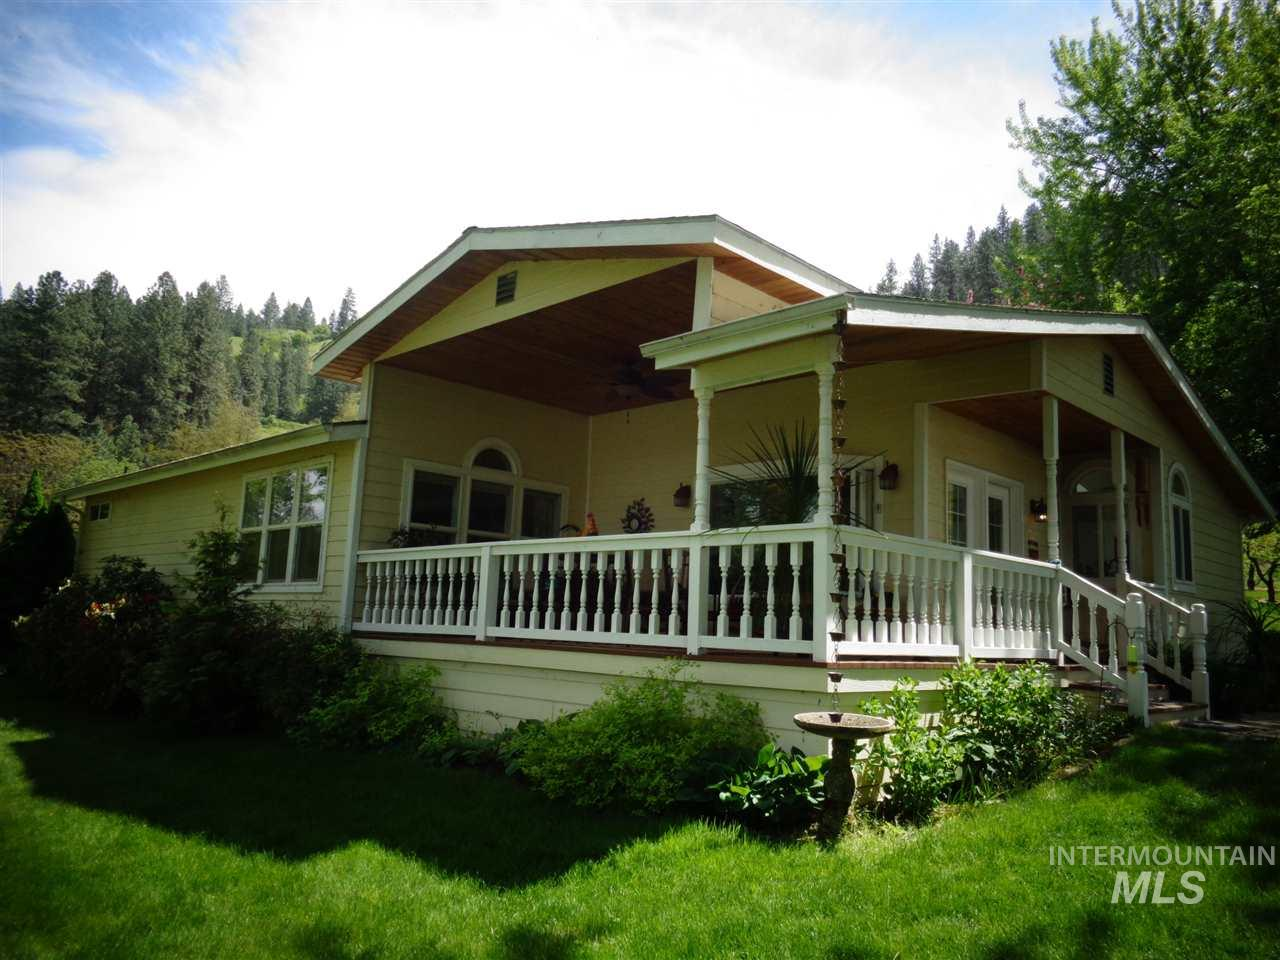 33328 Peach Lane, Lenore, Idaho 83541, 3 Bedrooms, 2 Bathrooms, Farm & Ranch For Sale, Price $988,000, 98729501